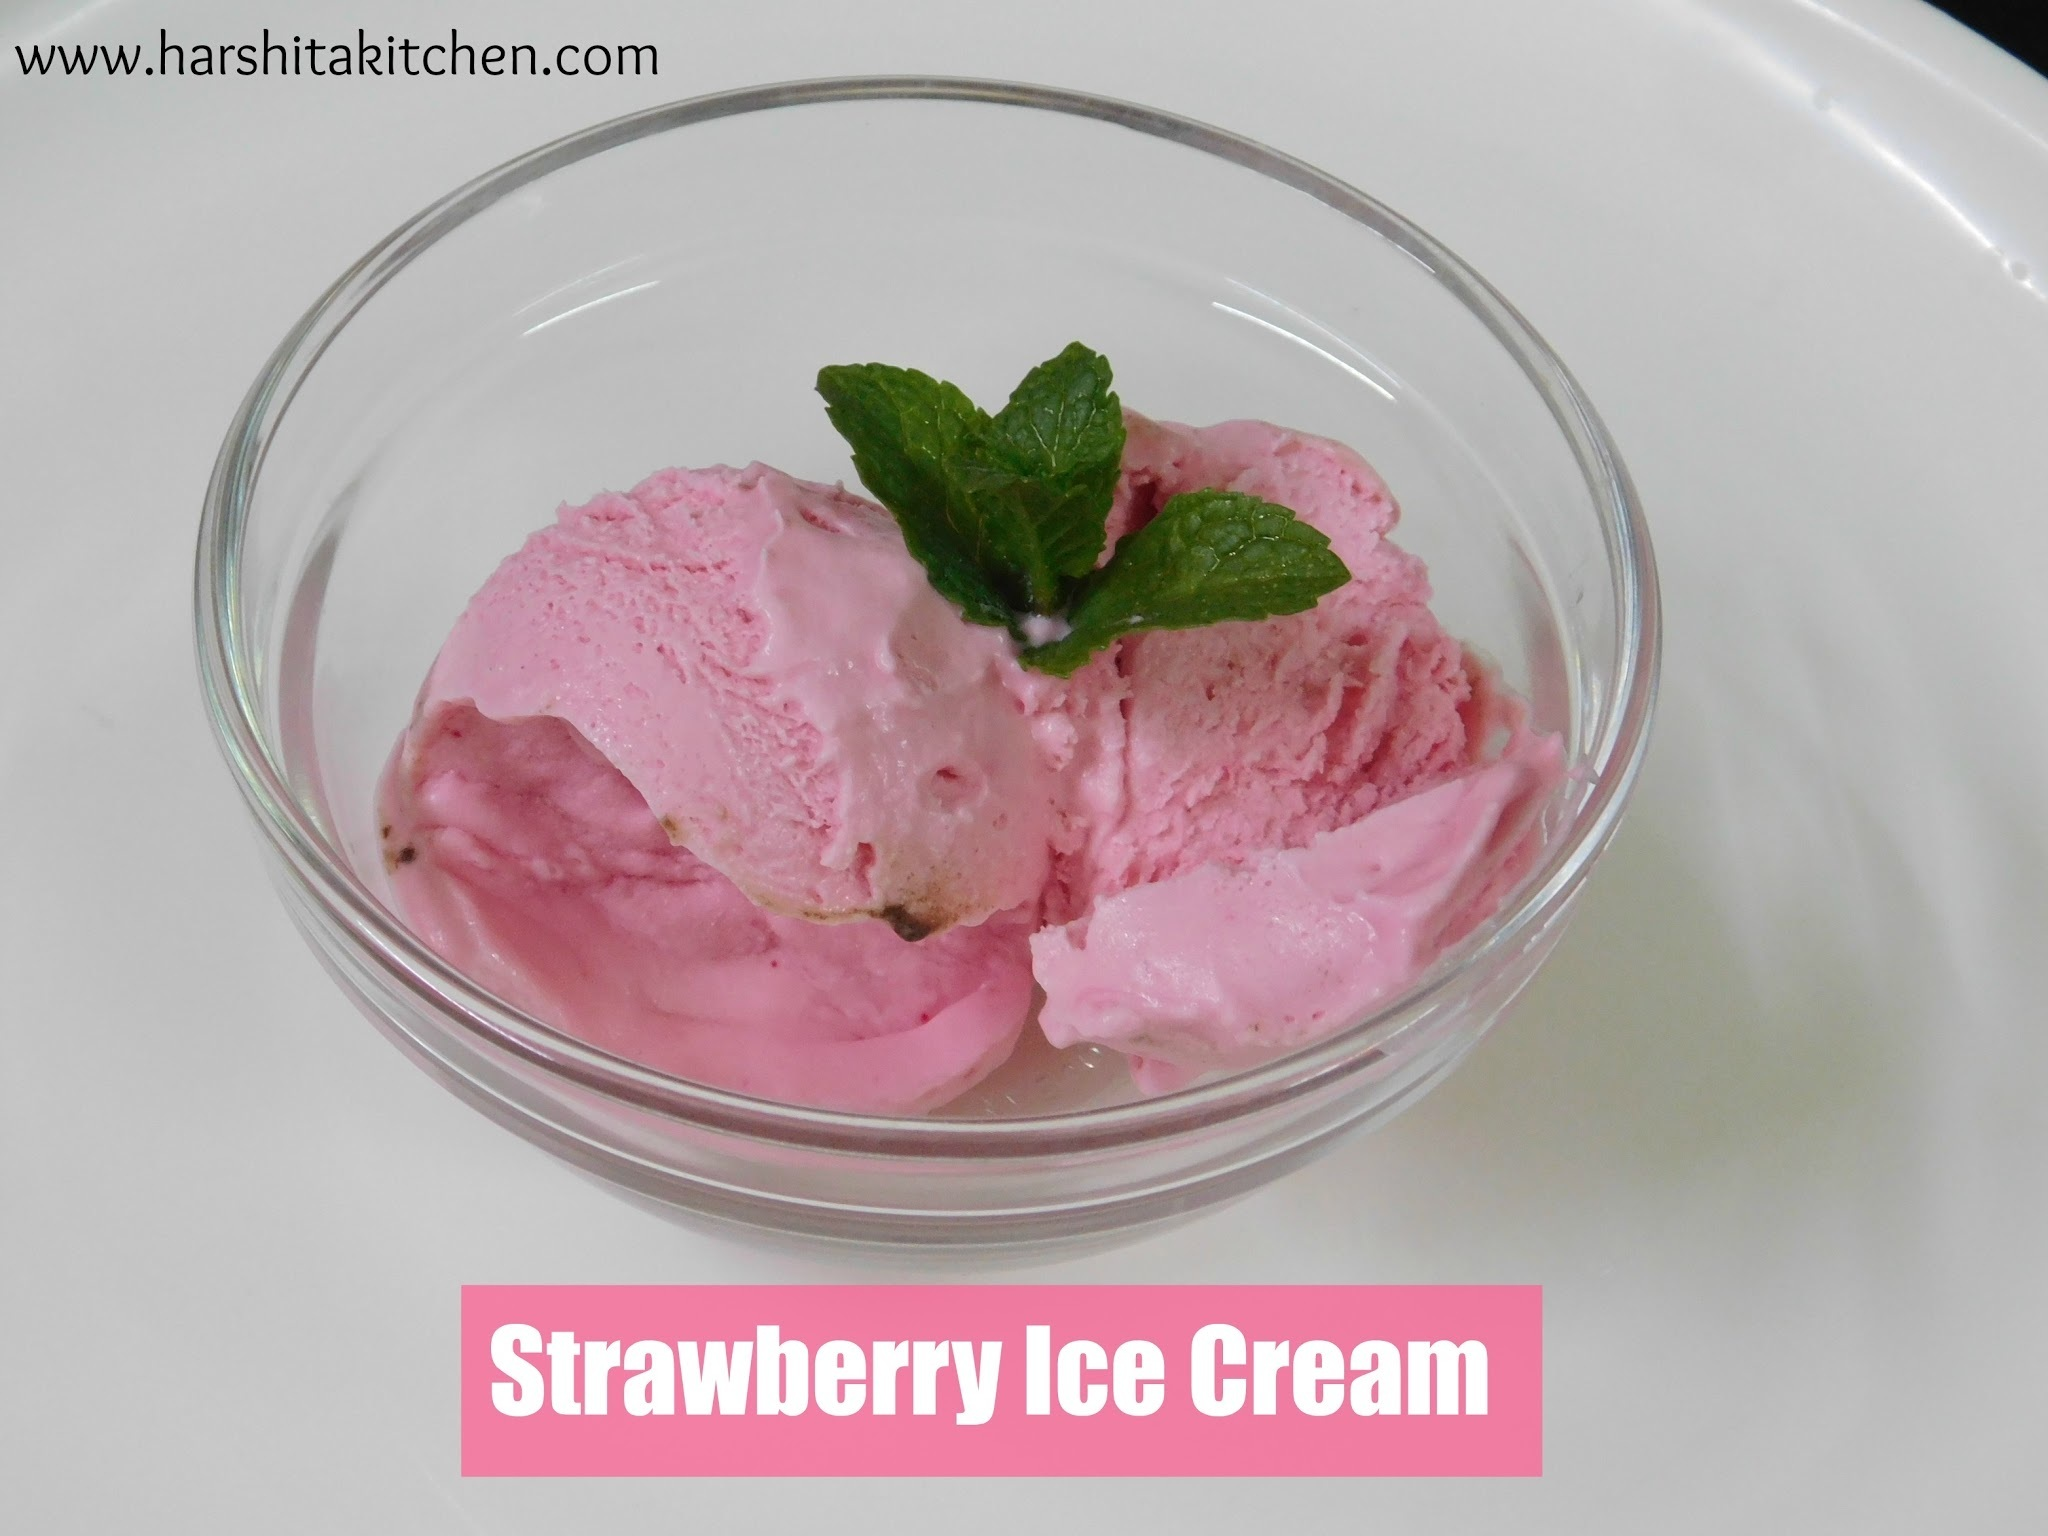 No Churn Strawberry Ice Cream Using Jello, Eggless Strawberry Ice Cream Recipe